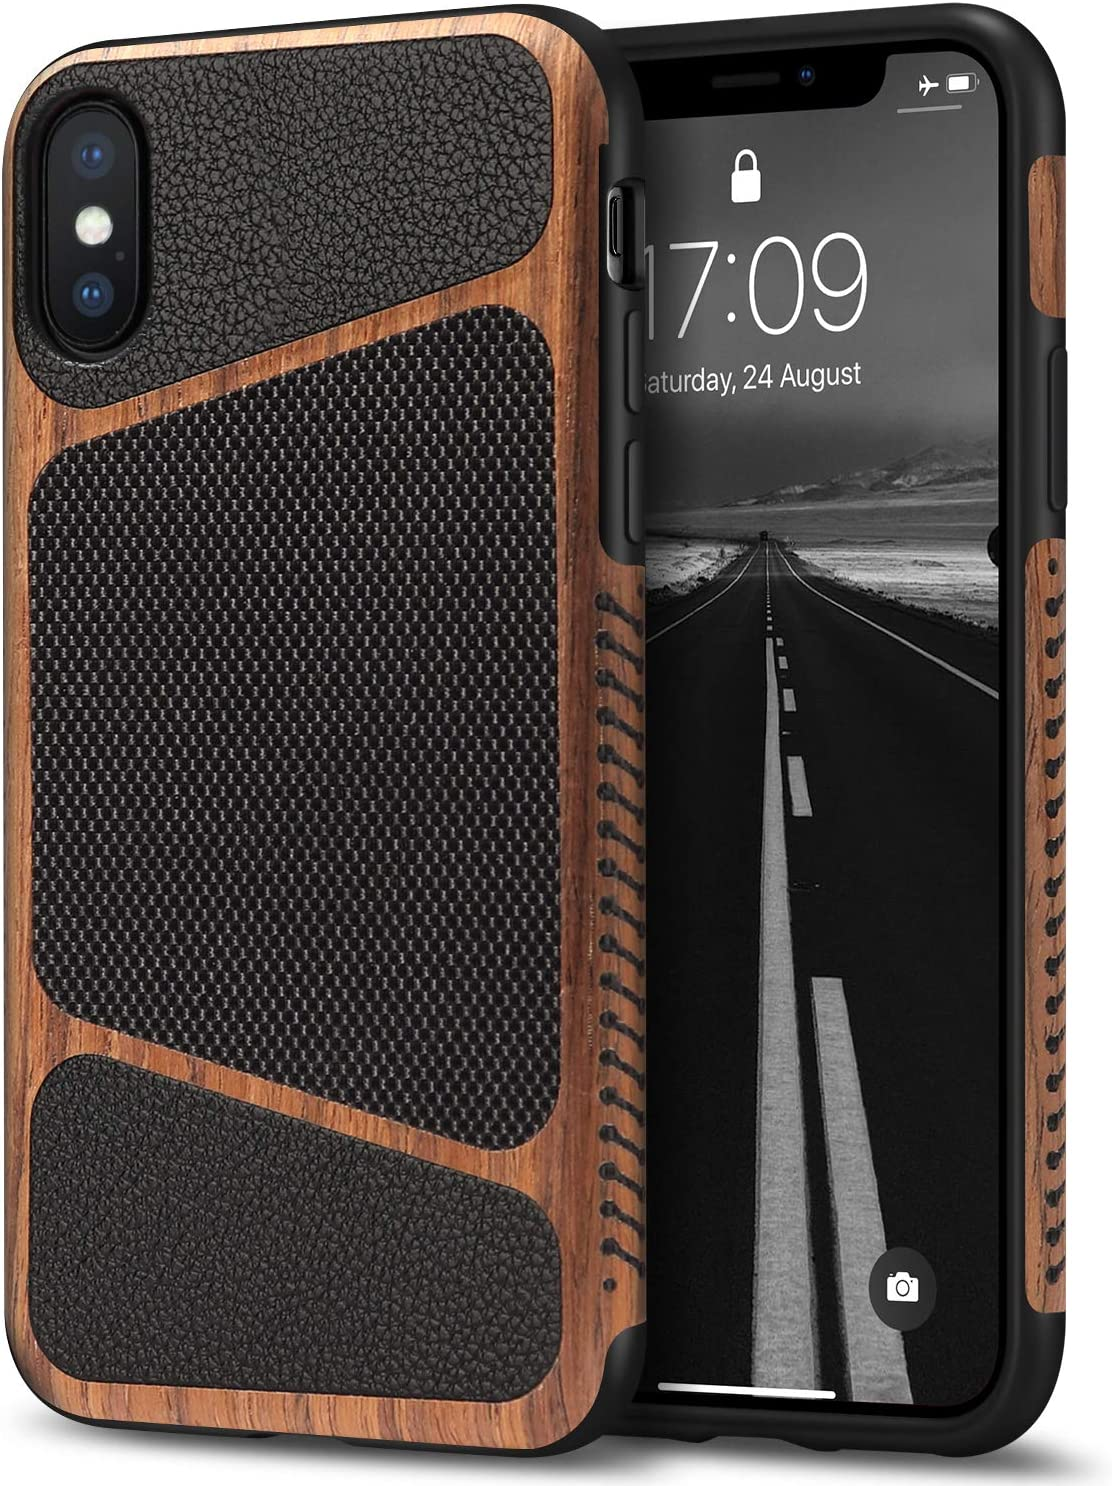 Tasikar Compatible with iPhone Xs Max Case Easy Grip Wood Grain with Nylon Fabric Leather Design Compatible with iPhone Xs Max